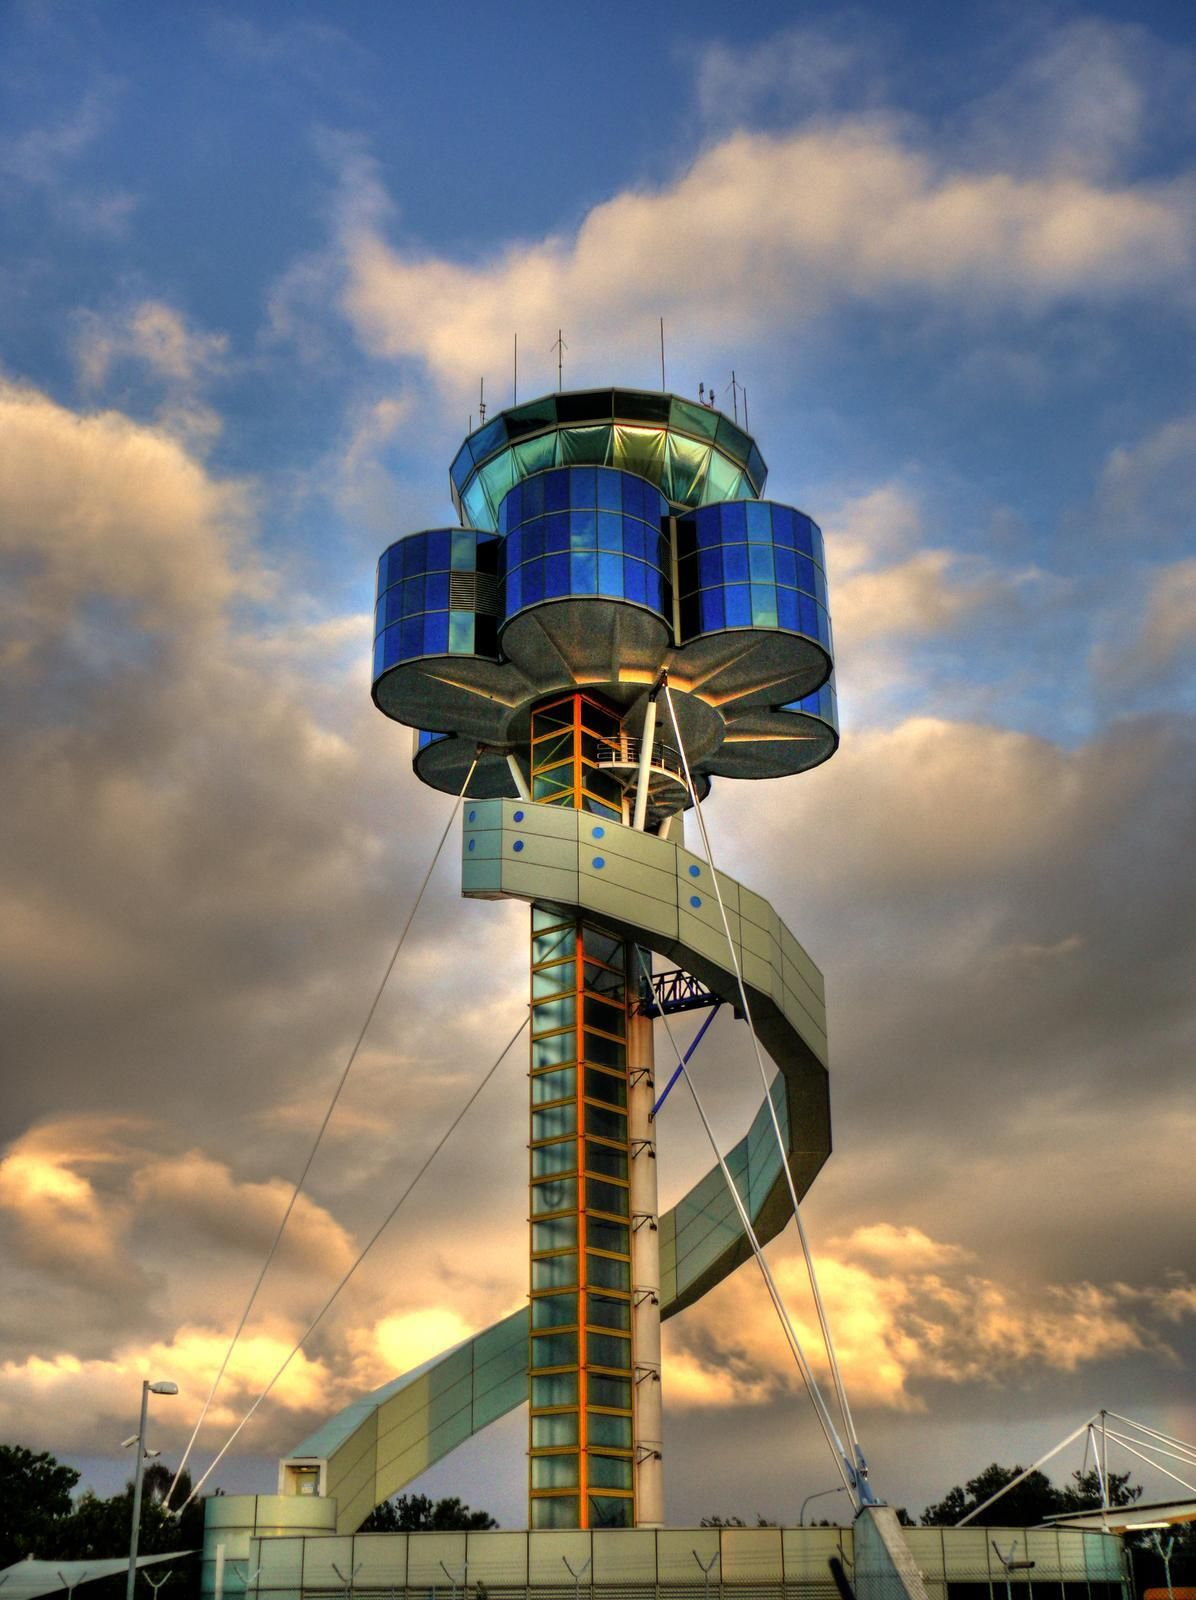 Sydney Airport's control tower. Is that not the biggest playground ...